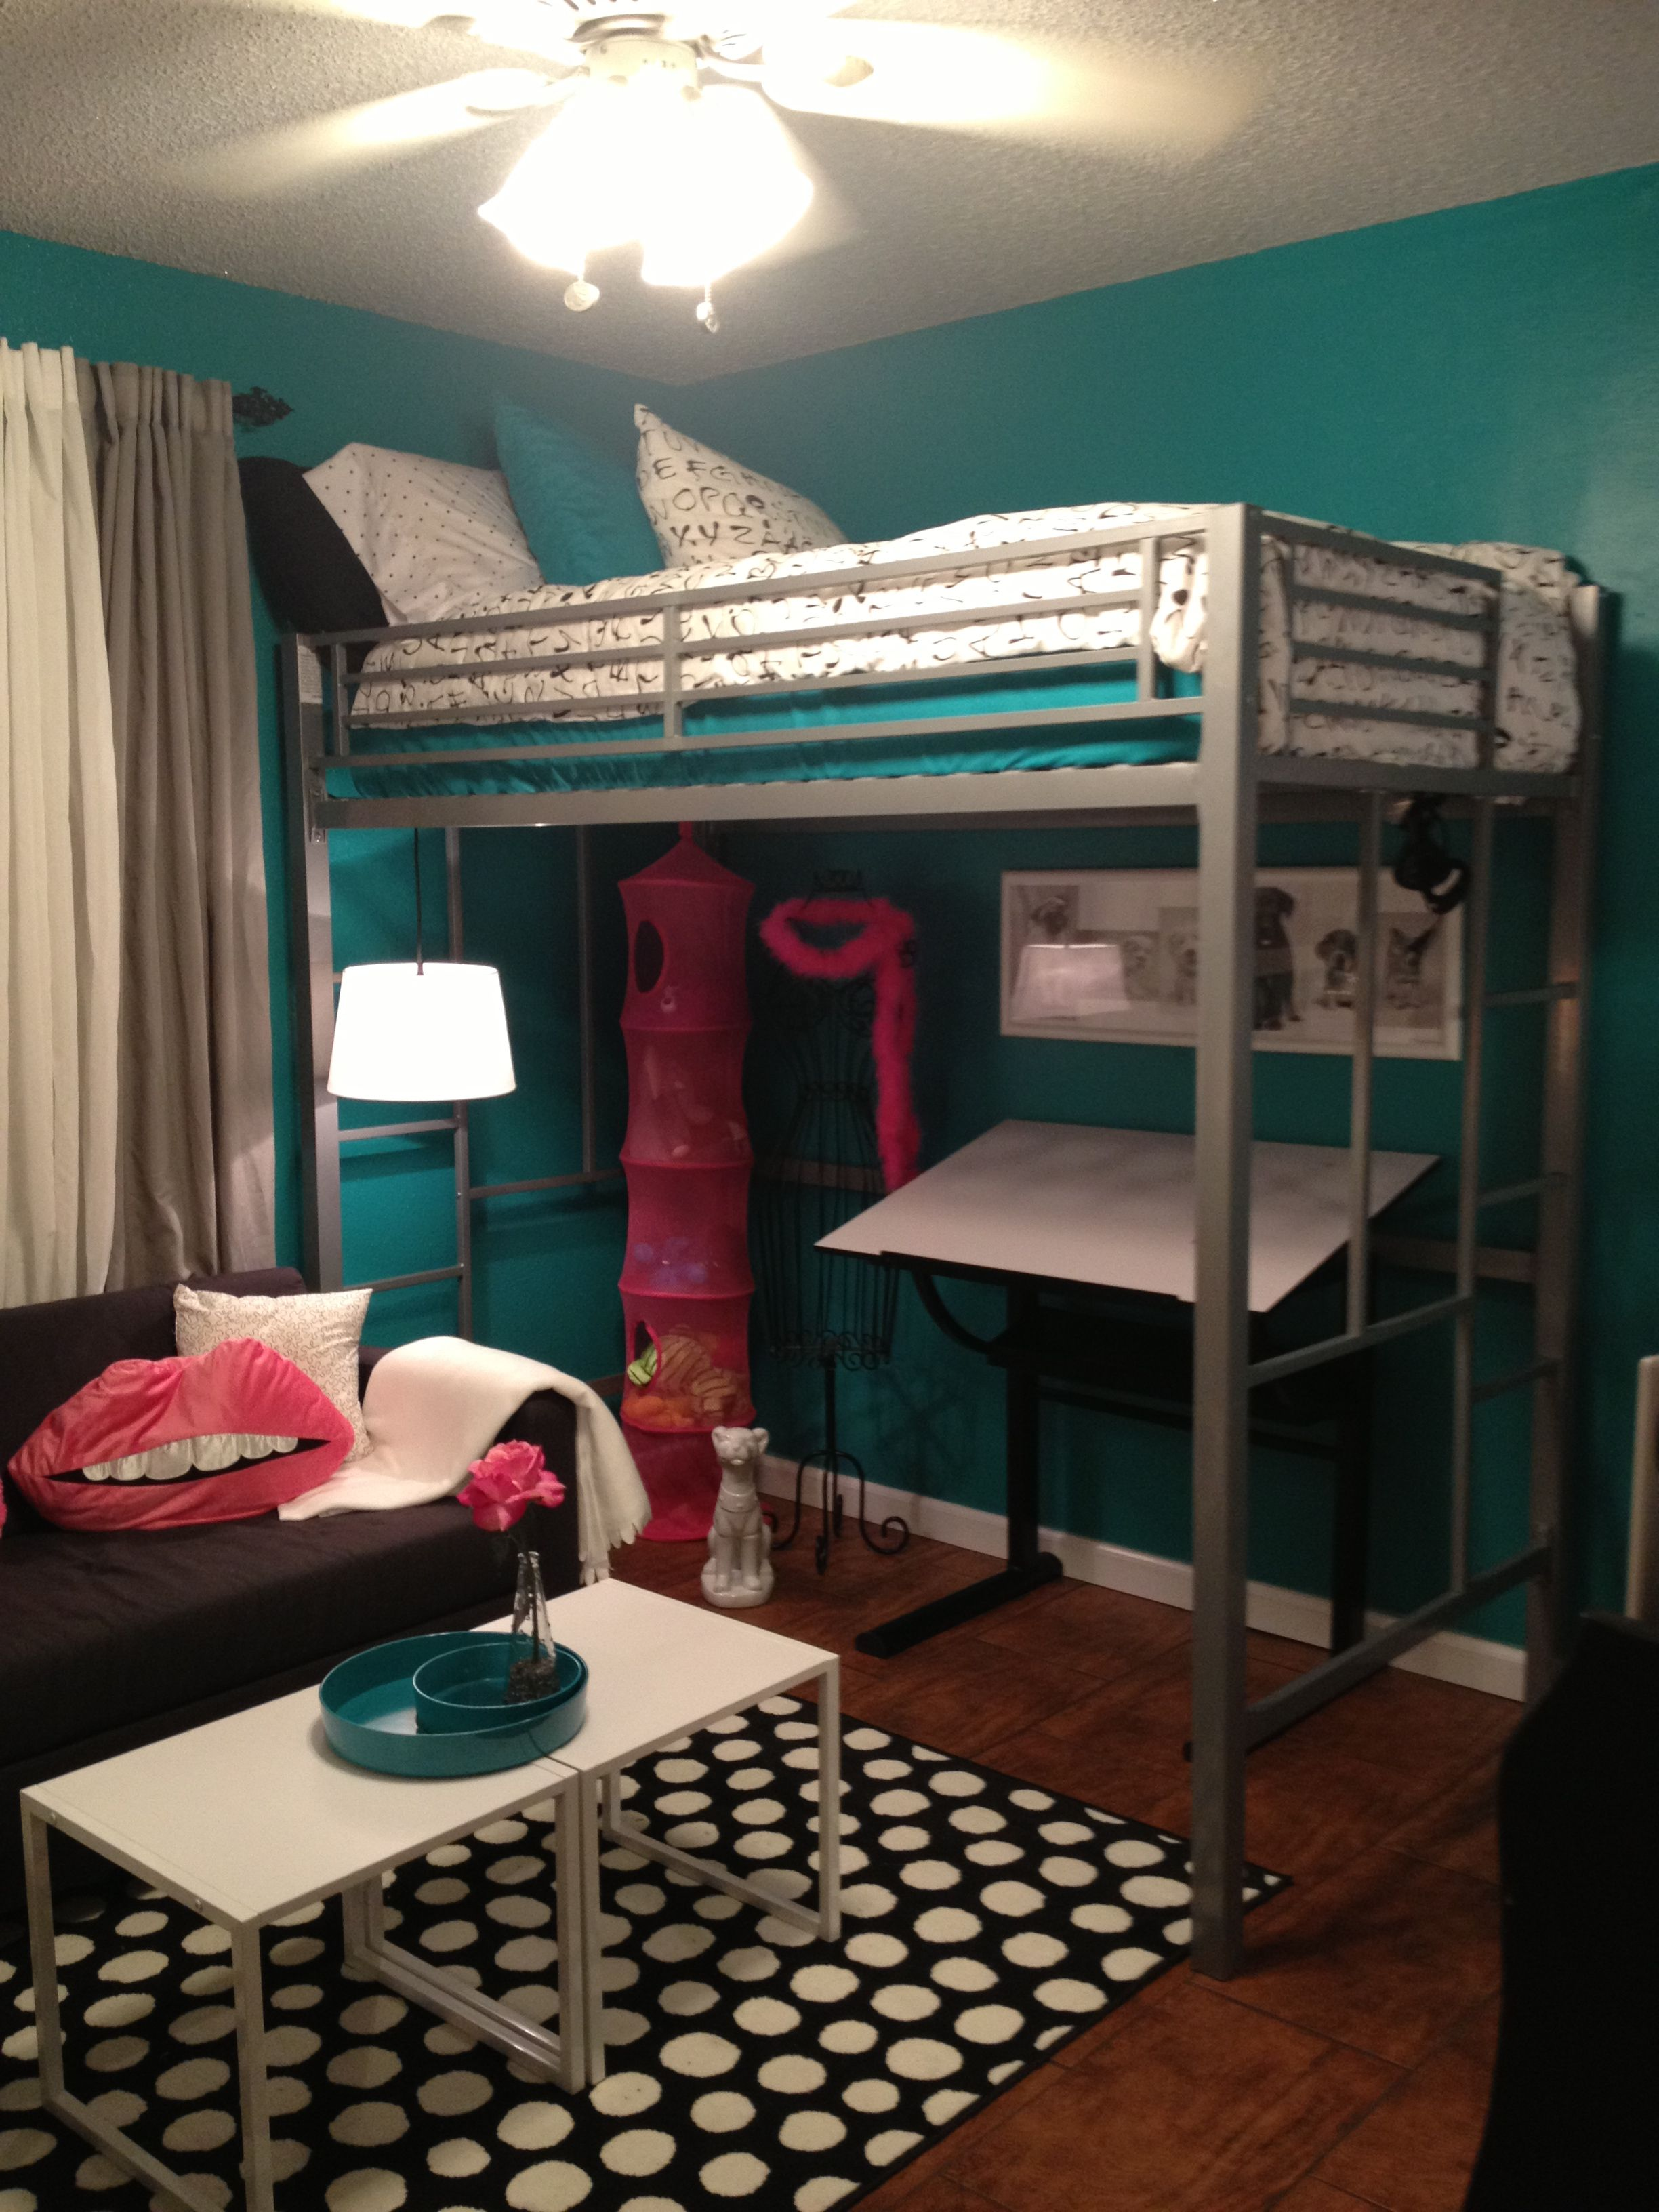 Black and white and teal bedroom - Teen Room Tween Room Bedroom Idea Loft Bed Black And White